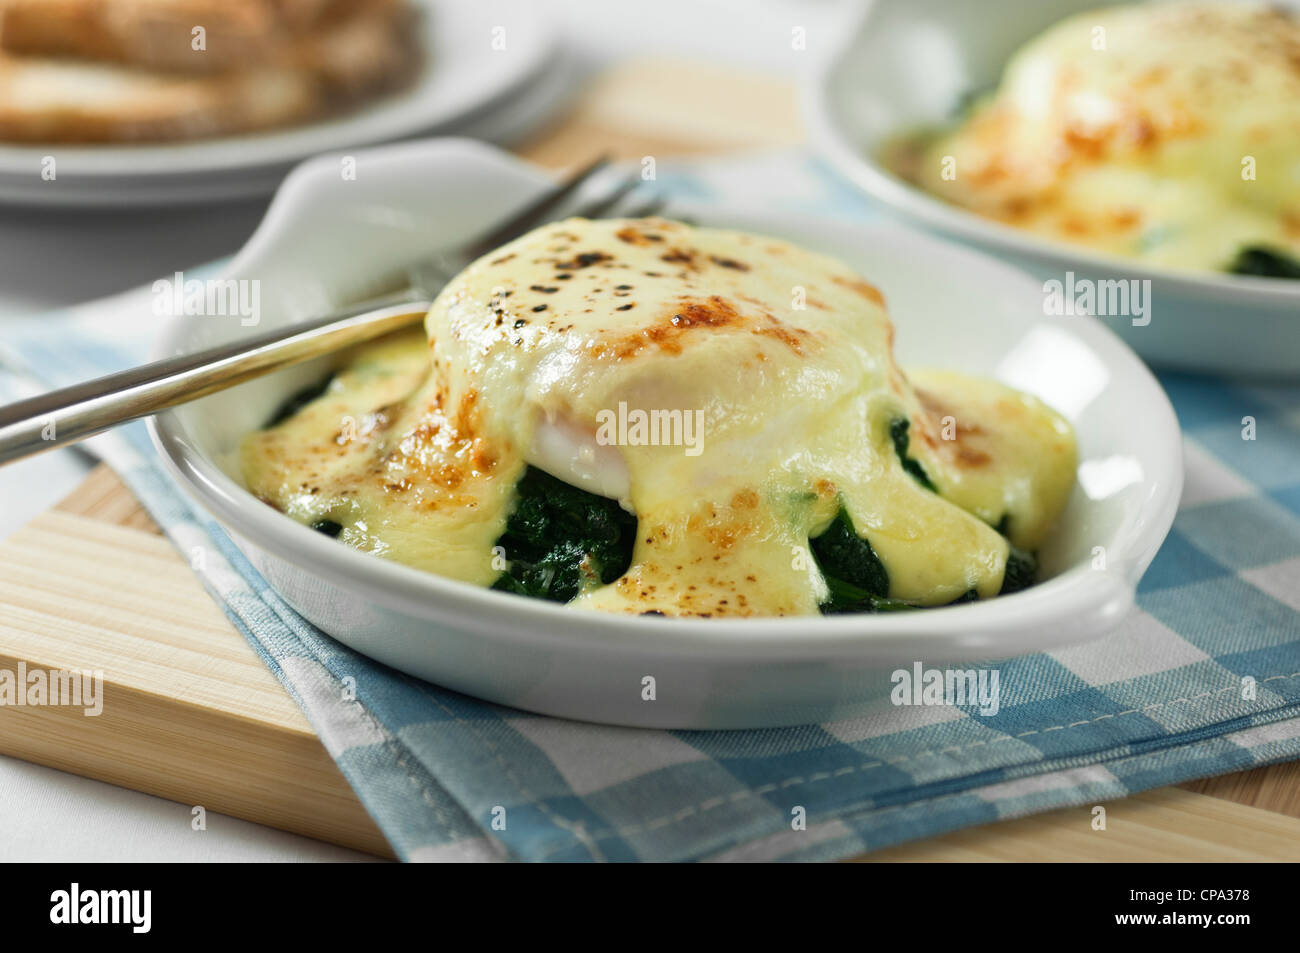 Eggs florentine. Poached eggs on spinach with cheese sauce. - Stock Image